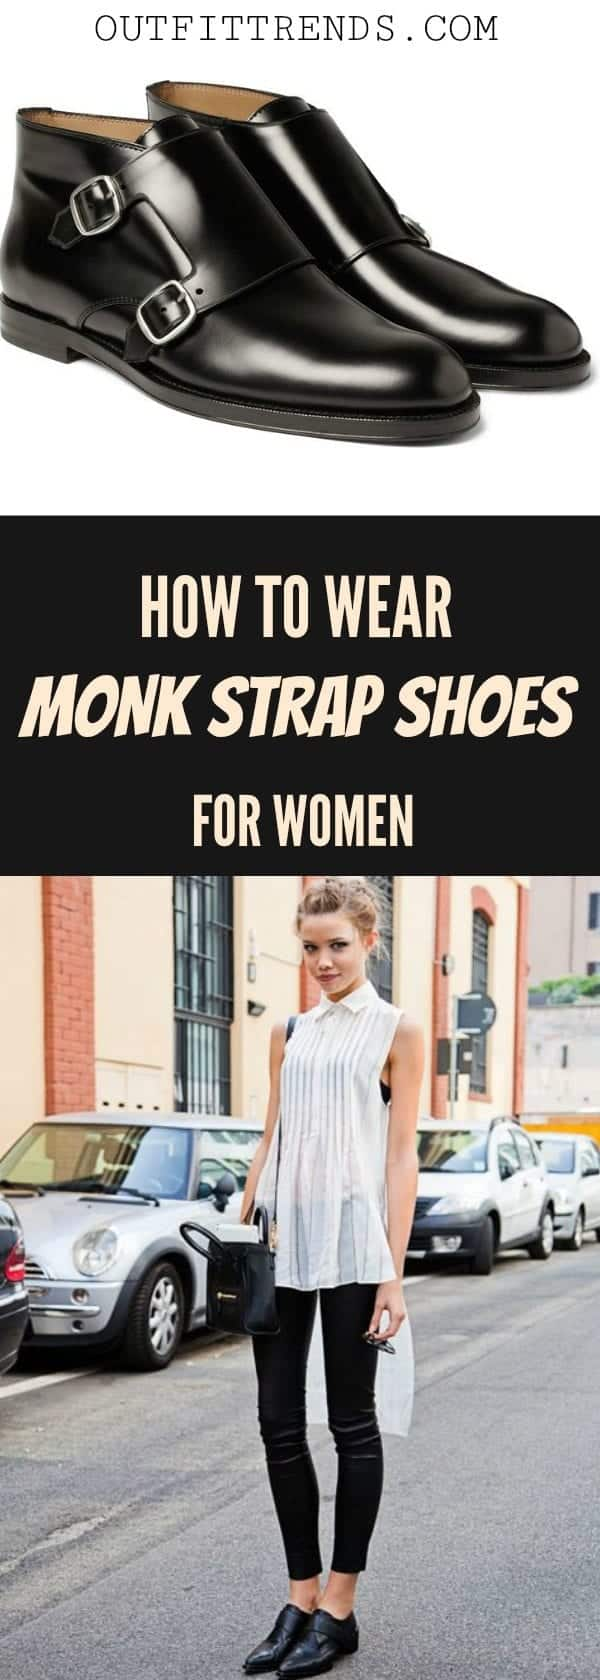 Girls Outfits with Monk Straps-30 Ways to Wear Monk Strap Shoes